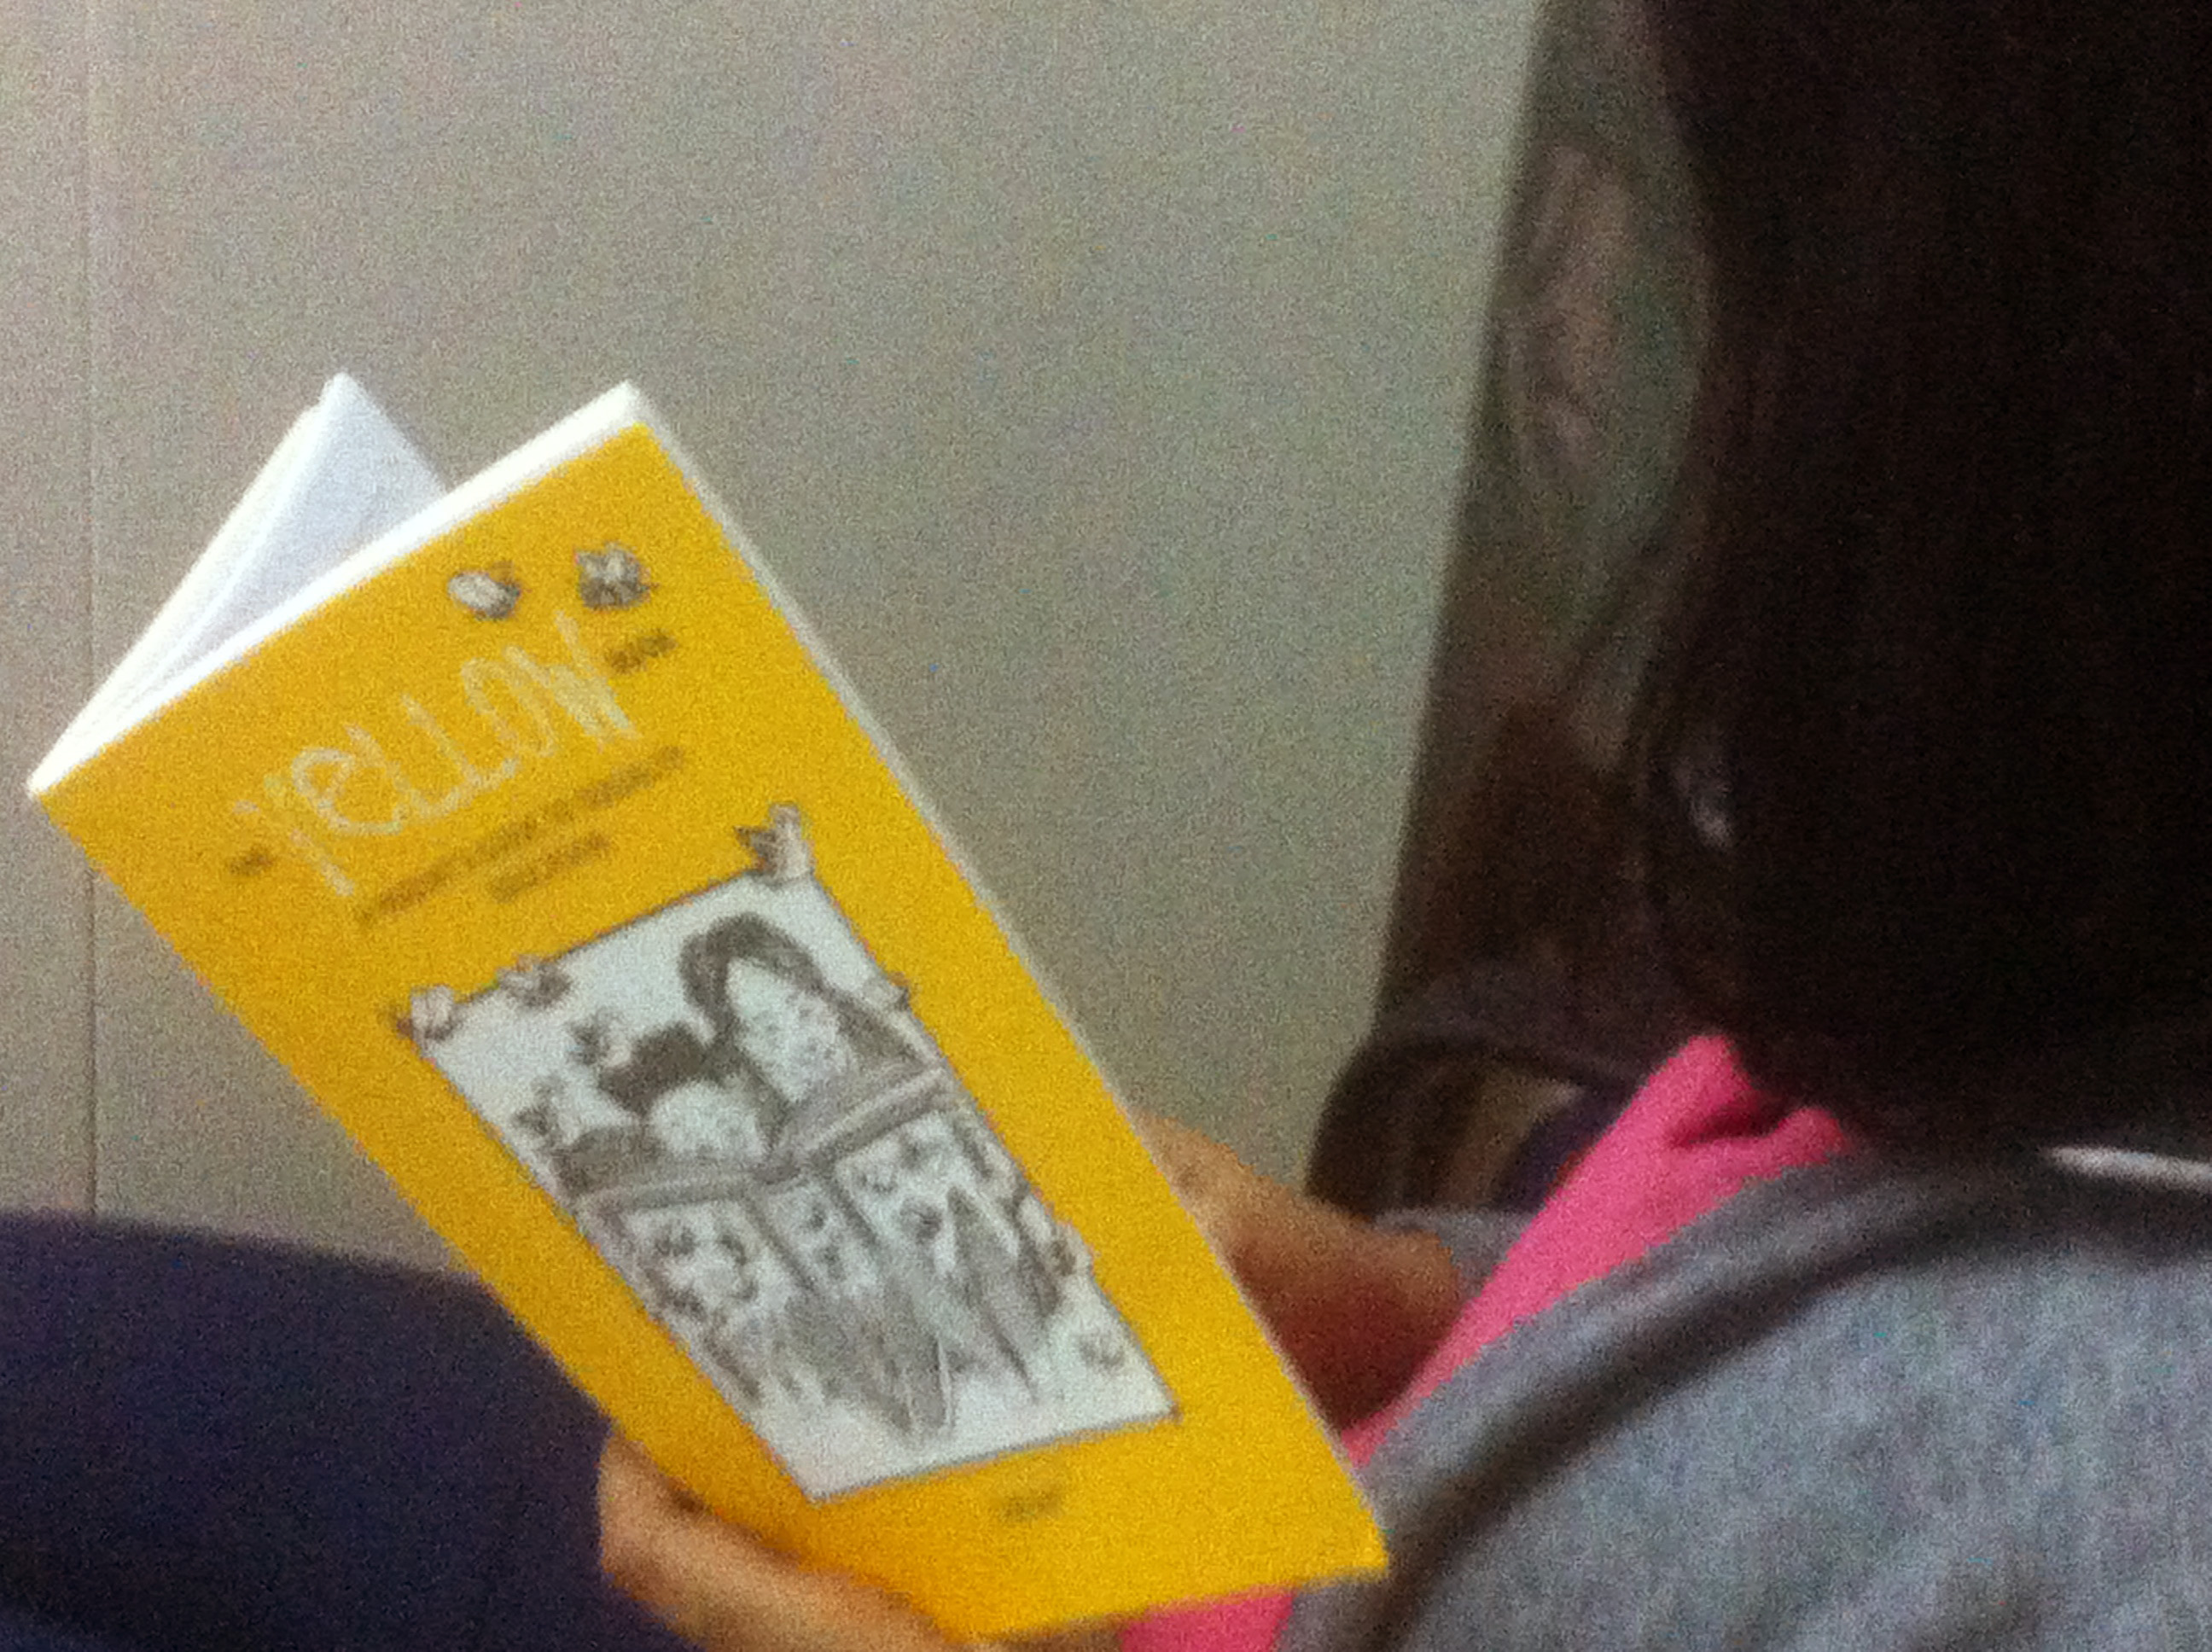 A person with short dark hair reads TARSHI's The Yellow Book